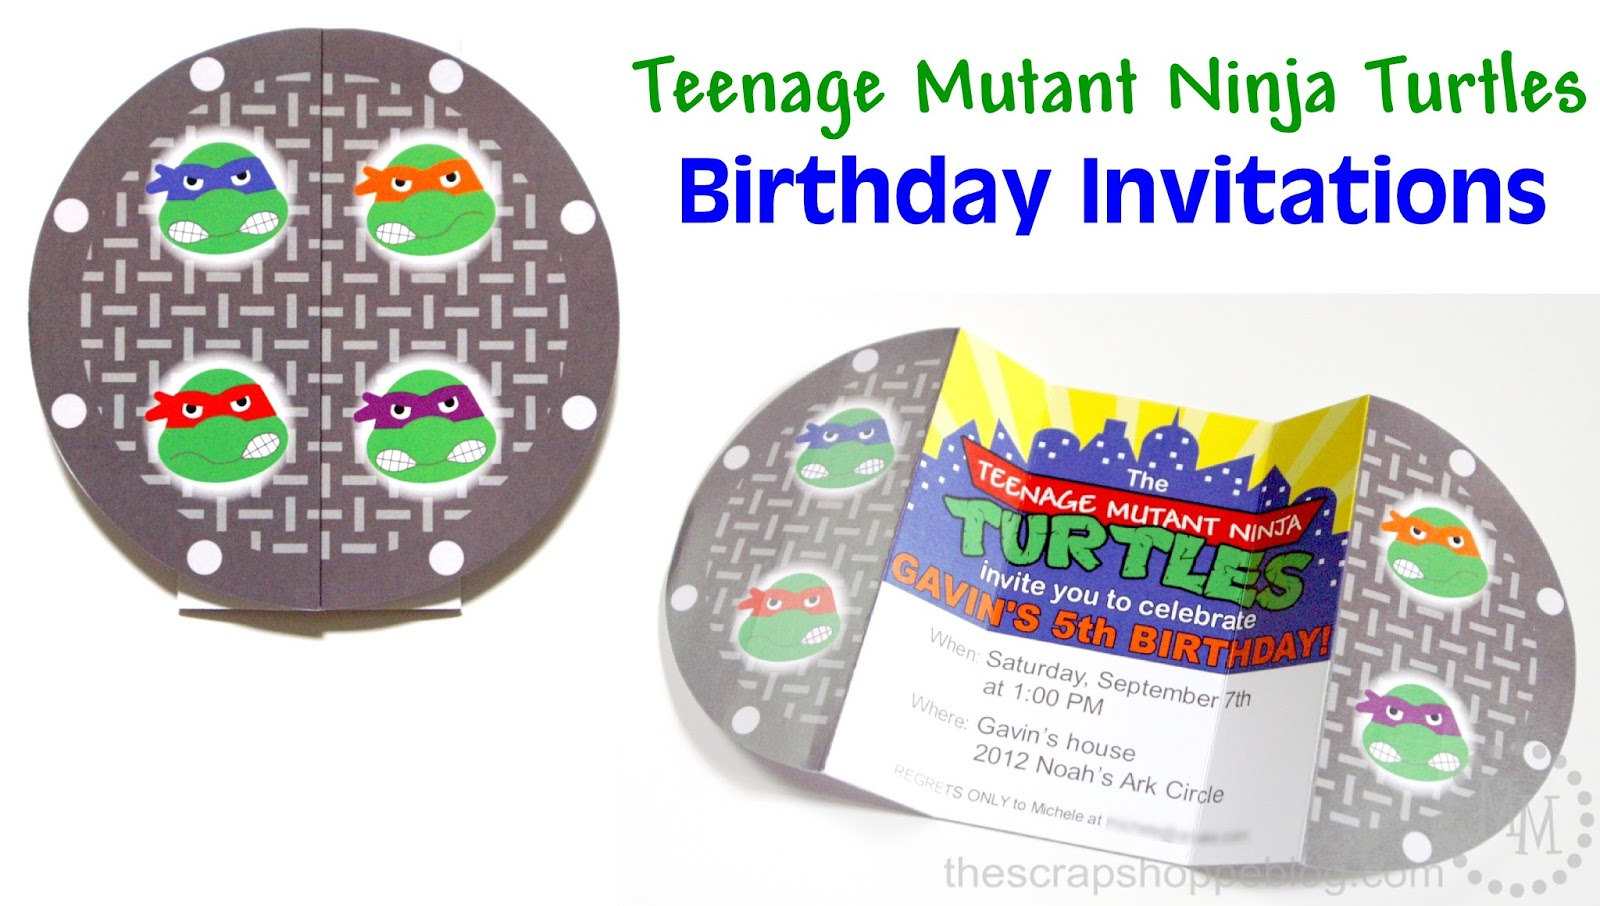 Teenage Mutant Ninja Turtles TMNT Birthday Invitations The Scrap